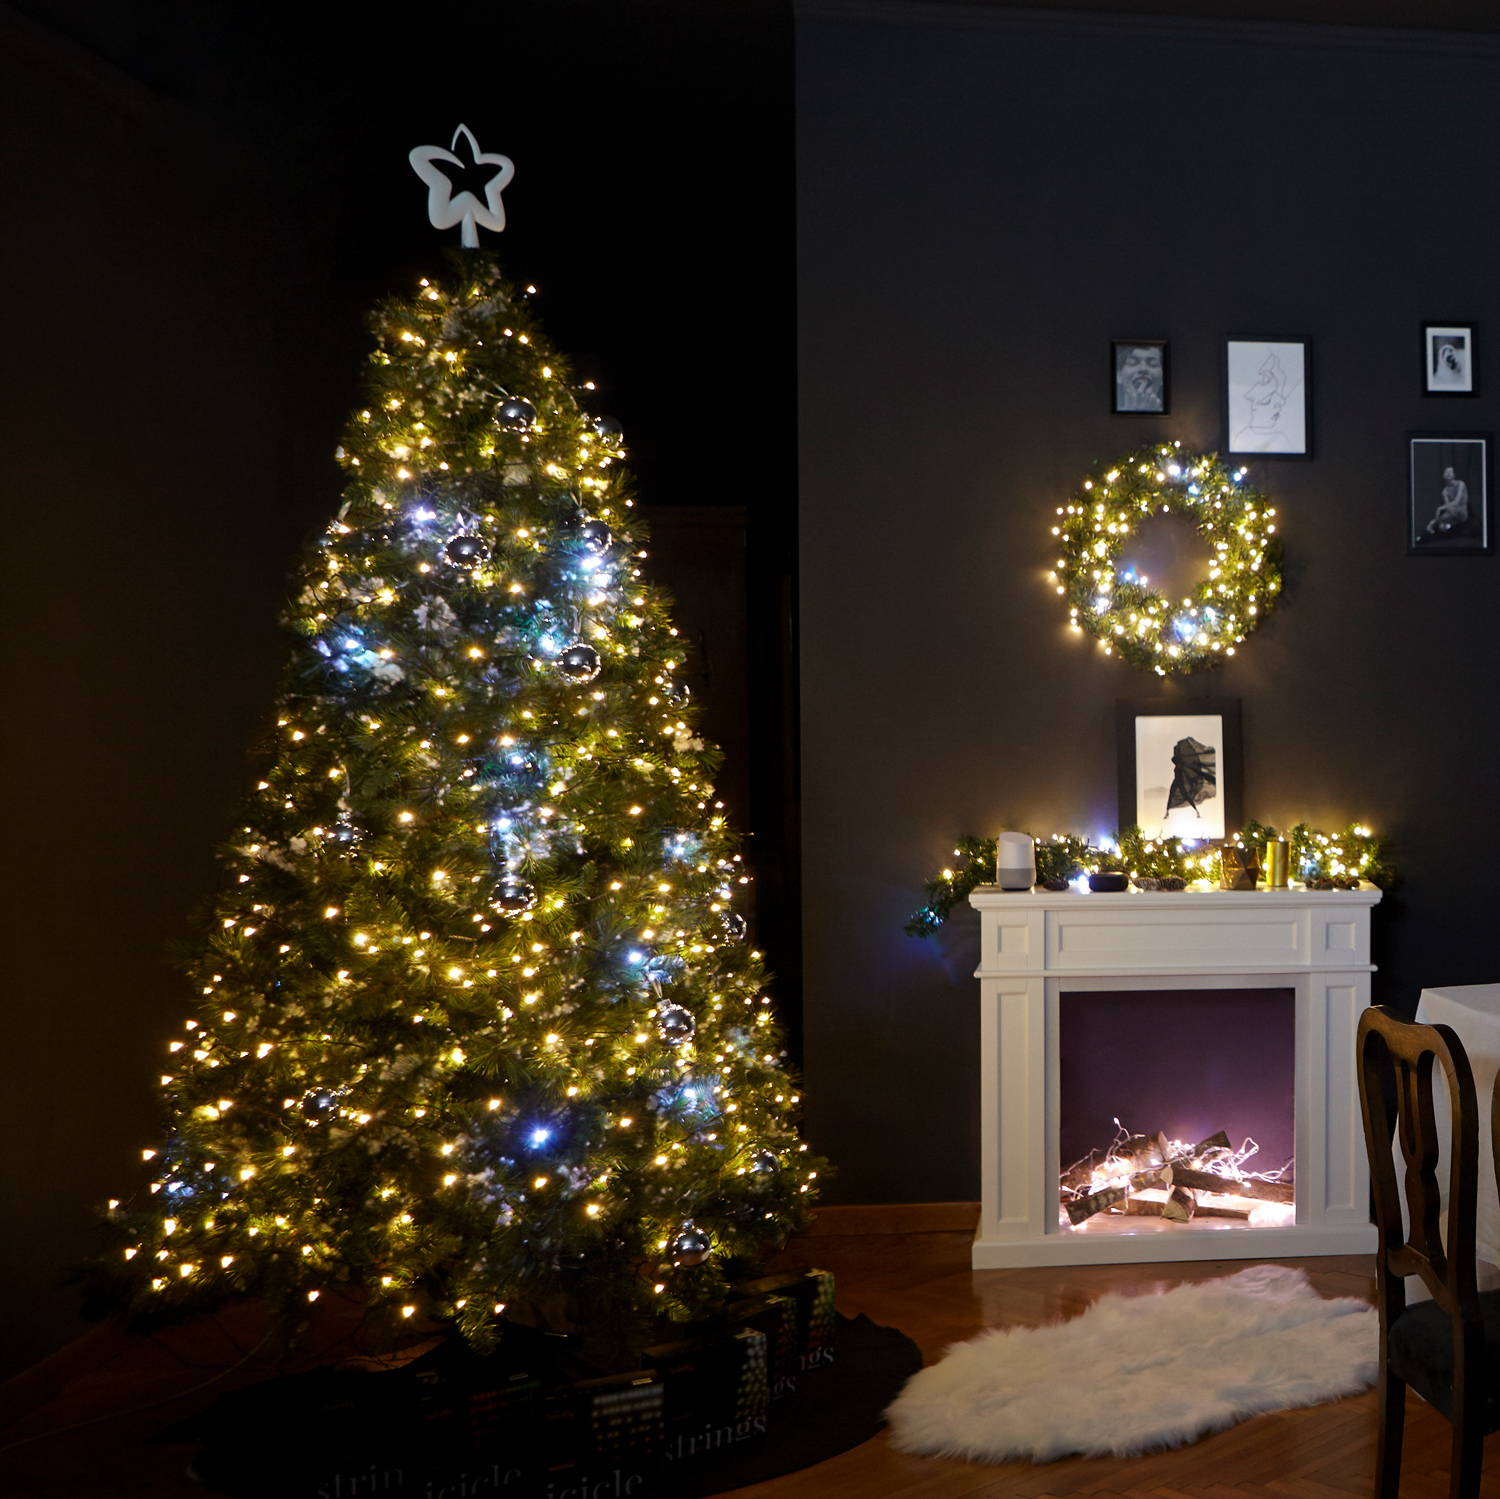 Gold edition Twinkly string lighting adorning Christmas tree, wreath and garland in living room